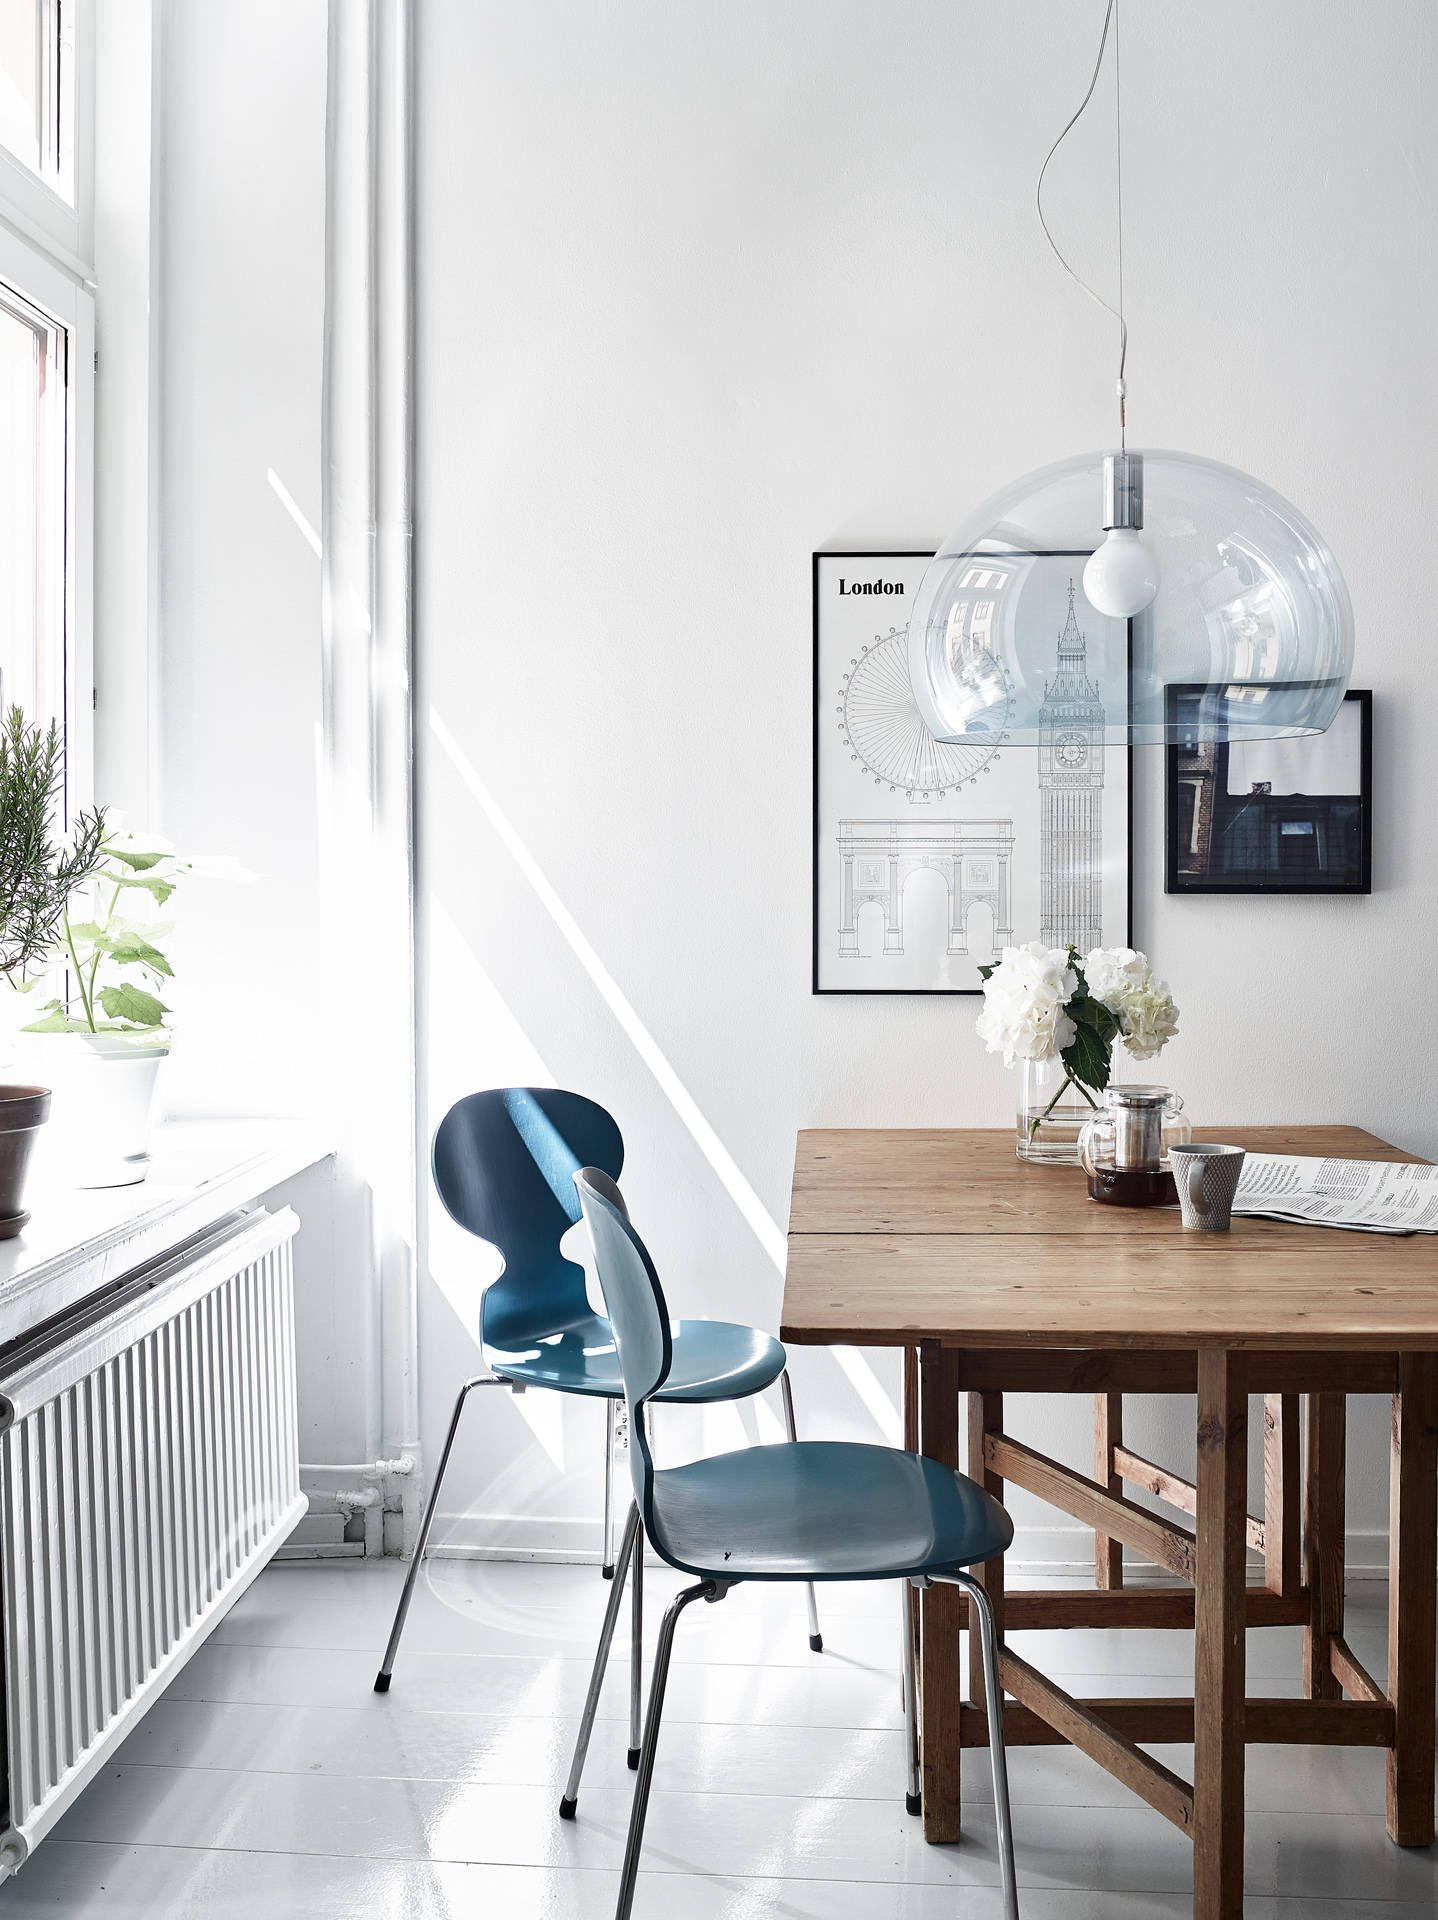 Arne jacobsen interior the ant chair by arne jacobsen from fritz hansen  classic apartment